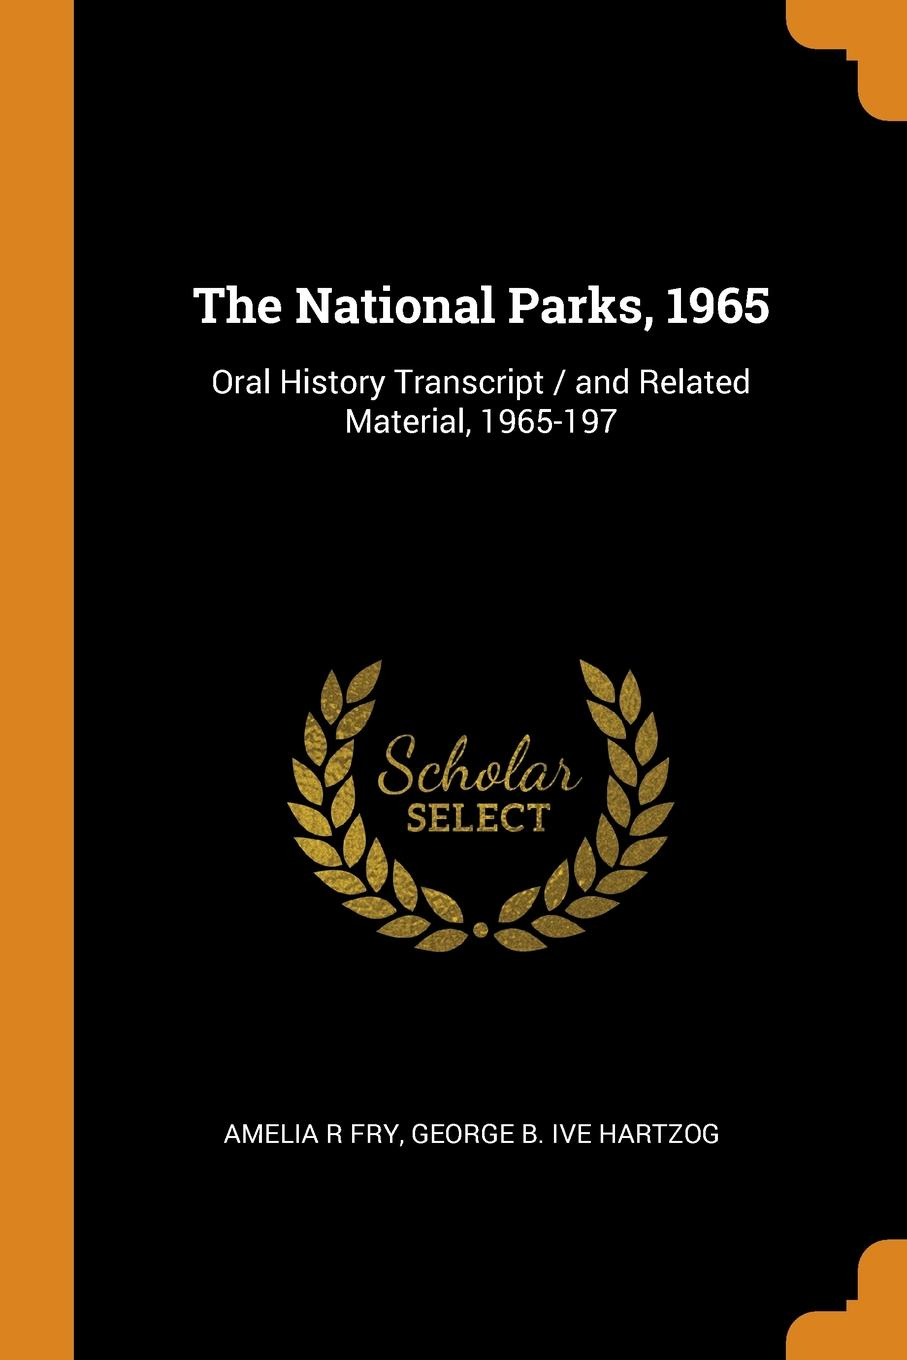 Amelia R Fry, George B. ive Hartzog The National Parks, 1965. Oral History Transcript / and Related Material, 1965-197 george b ive hartzog the national parks 1965 oral history transcript and related material 1965 1973